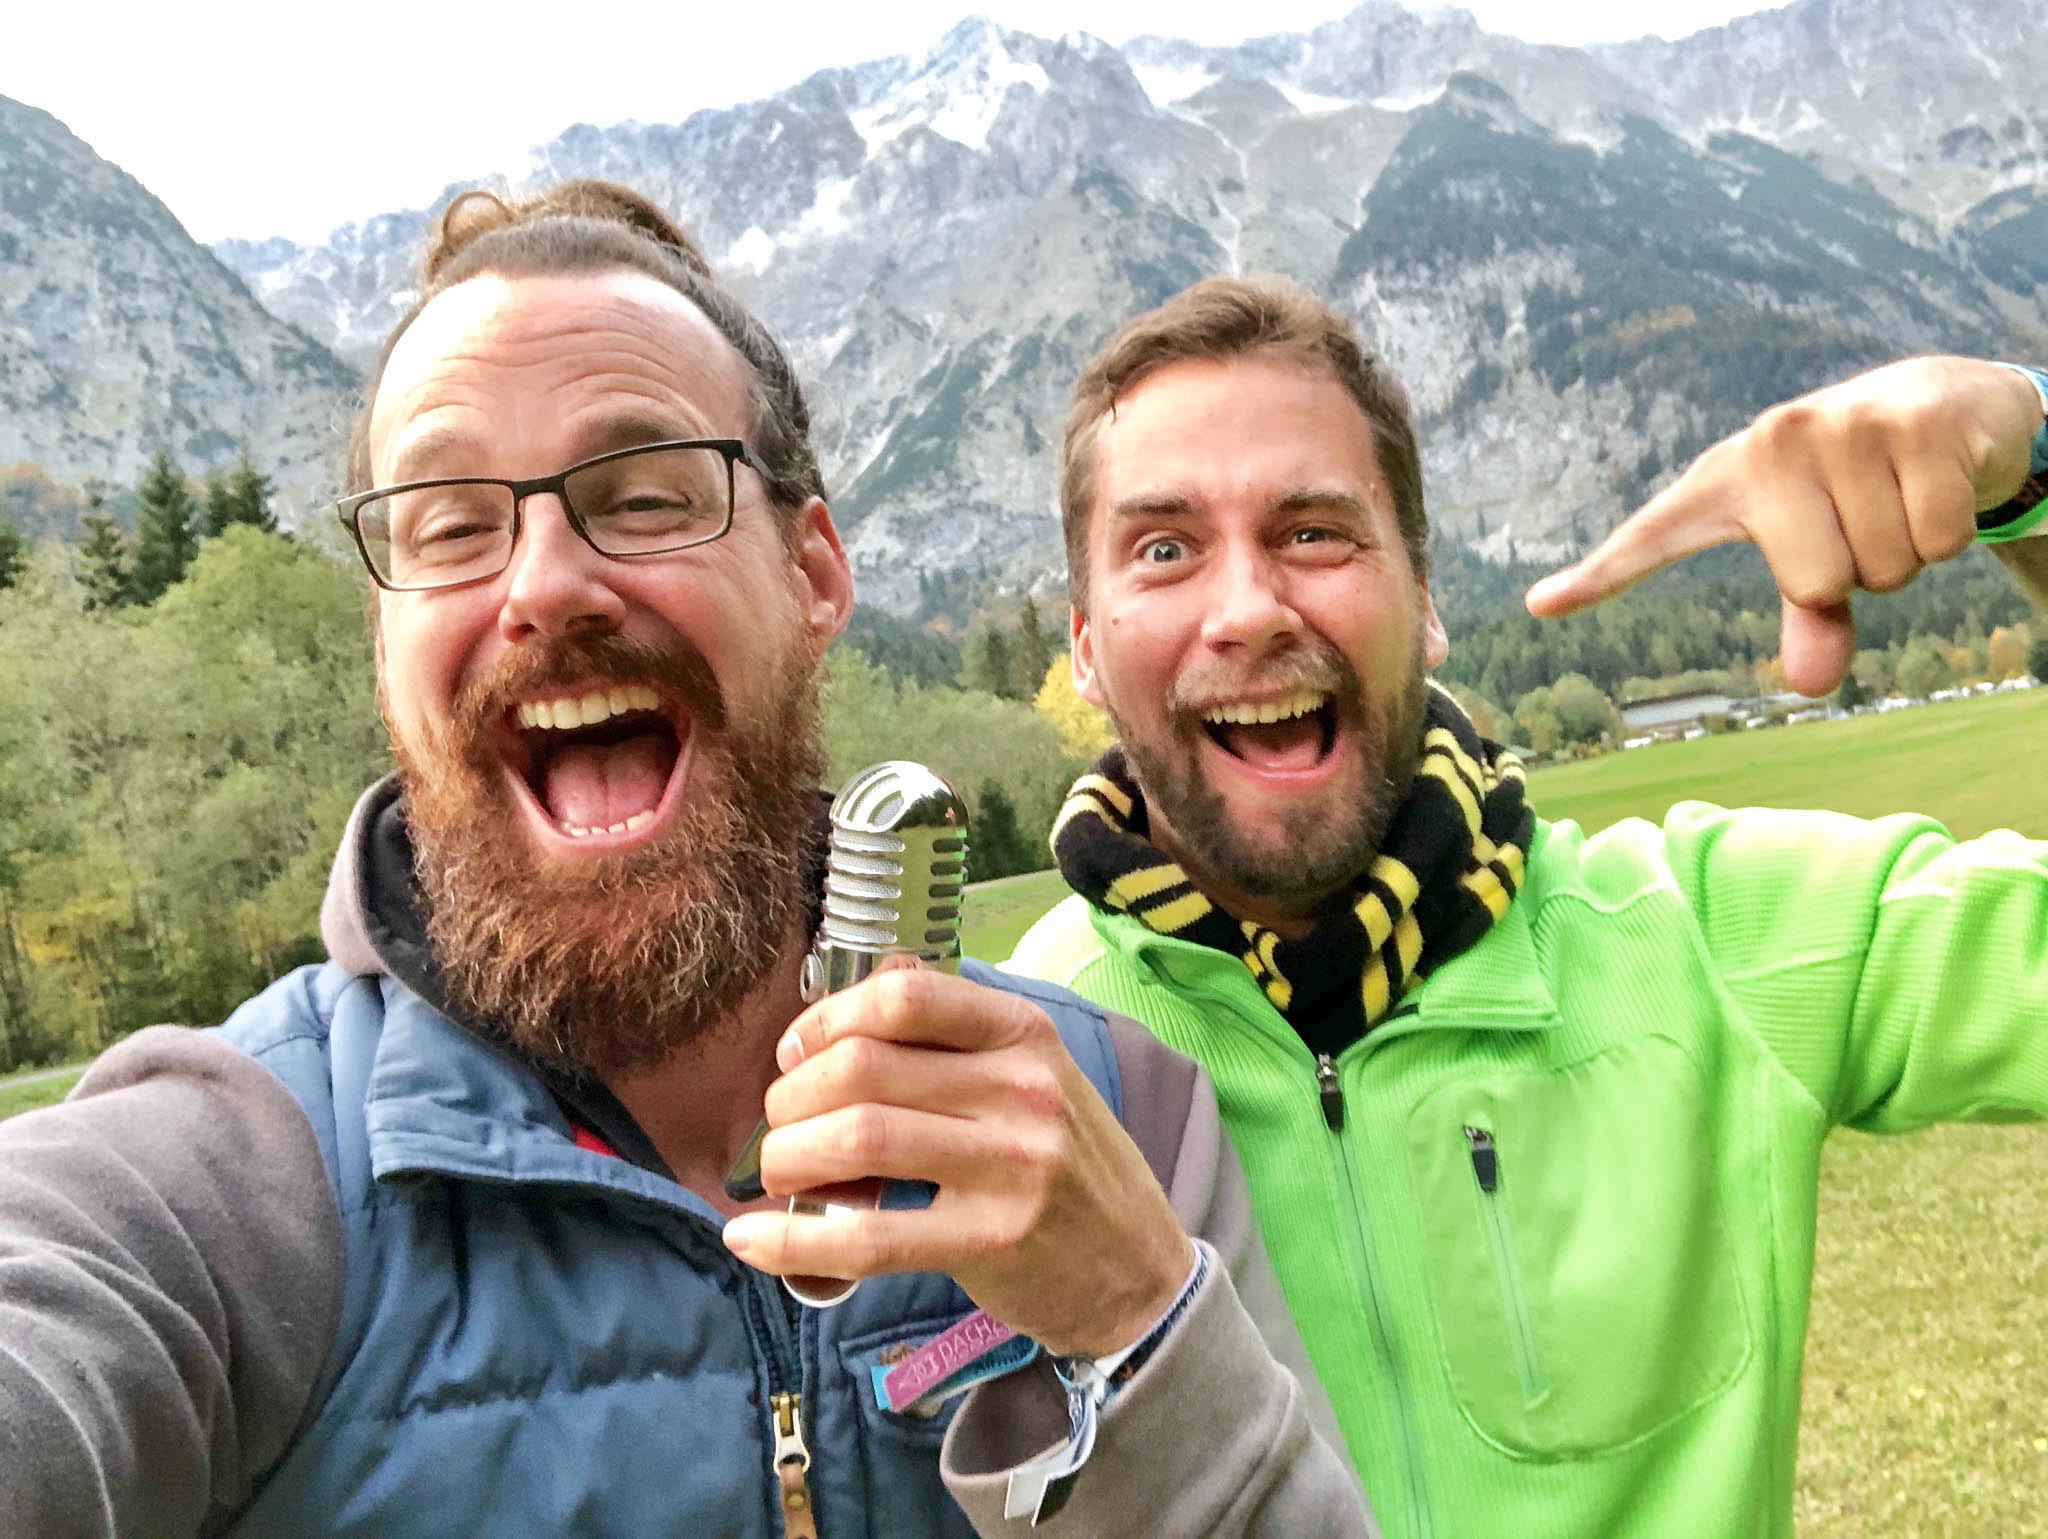 IMG_6380_camper-nomads-podcast-lukas-buerger-personal-training-thilo-vogel-vogel-adventure_005